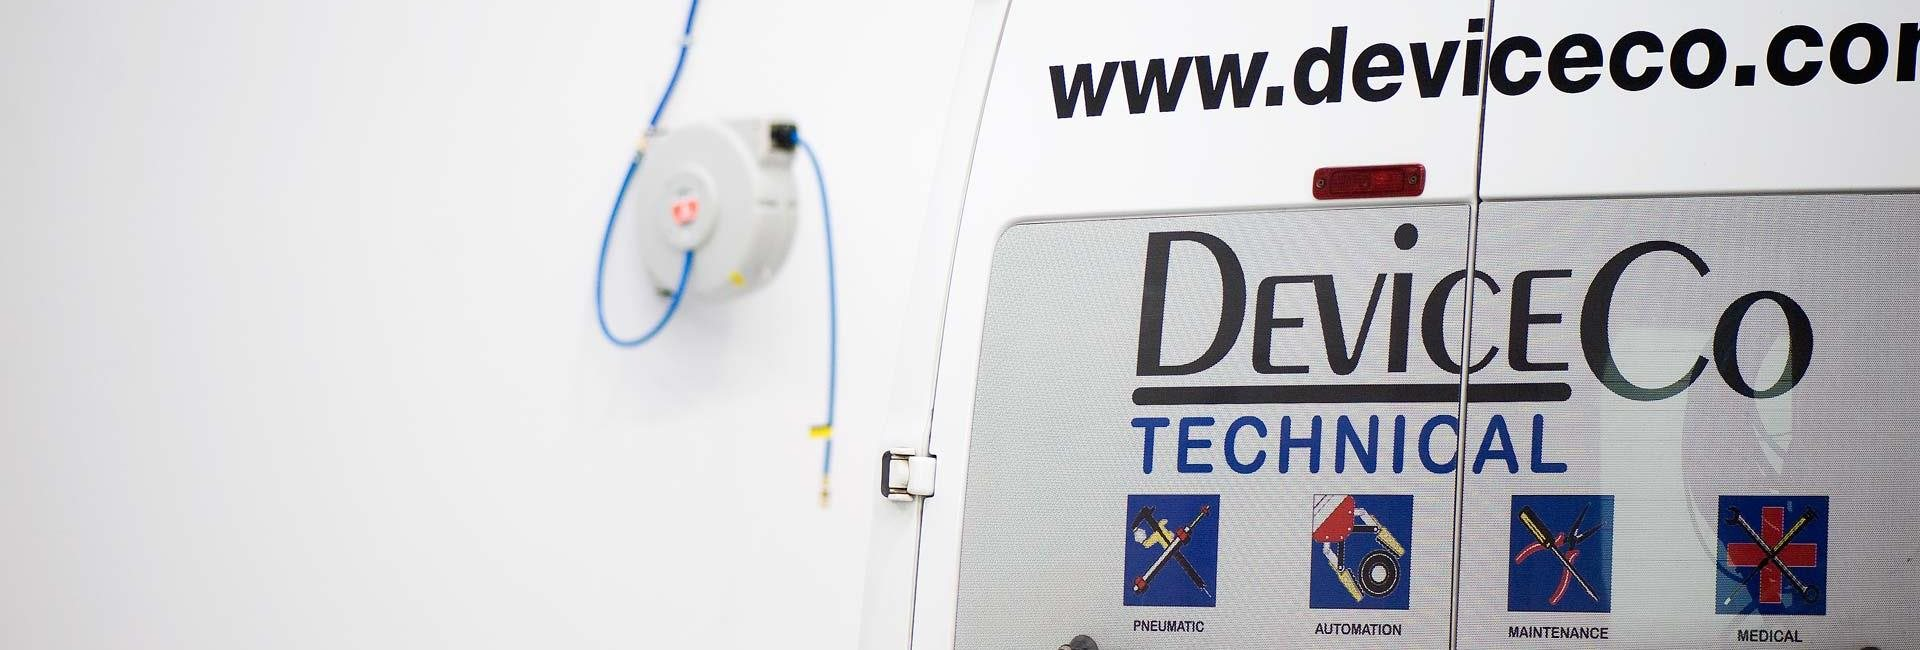 DeviceCo Technical